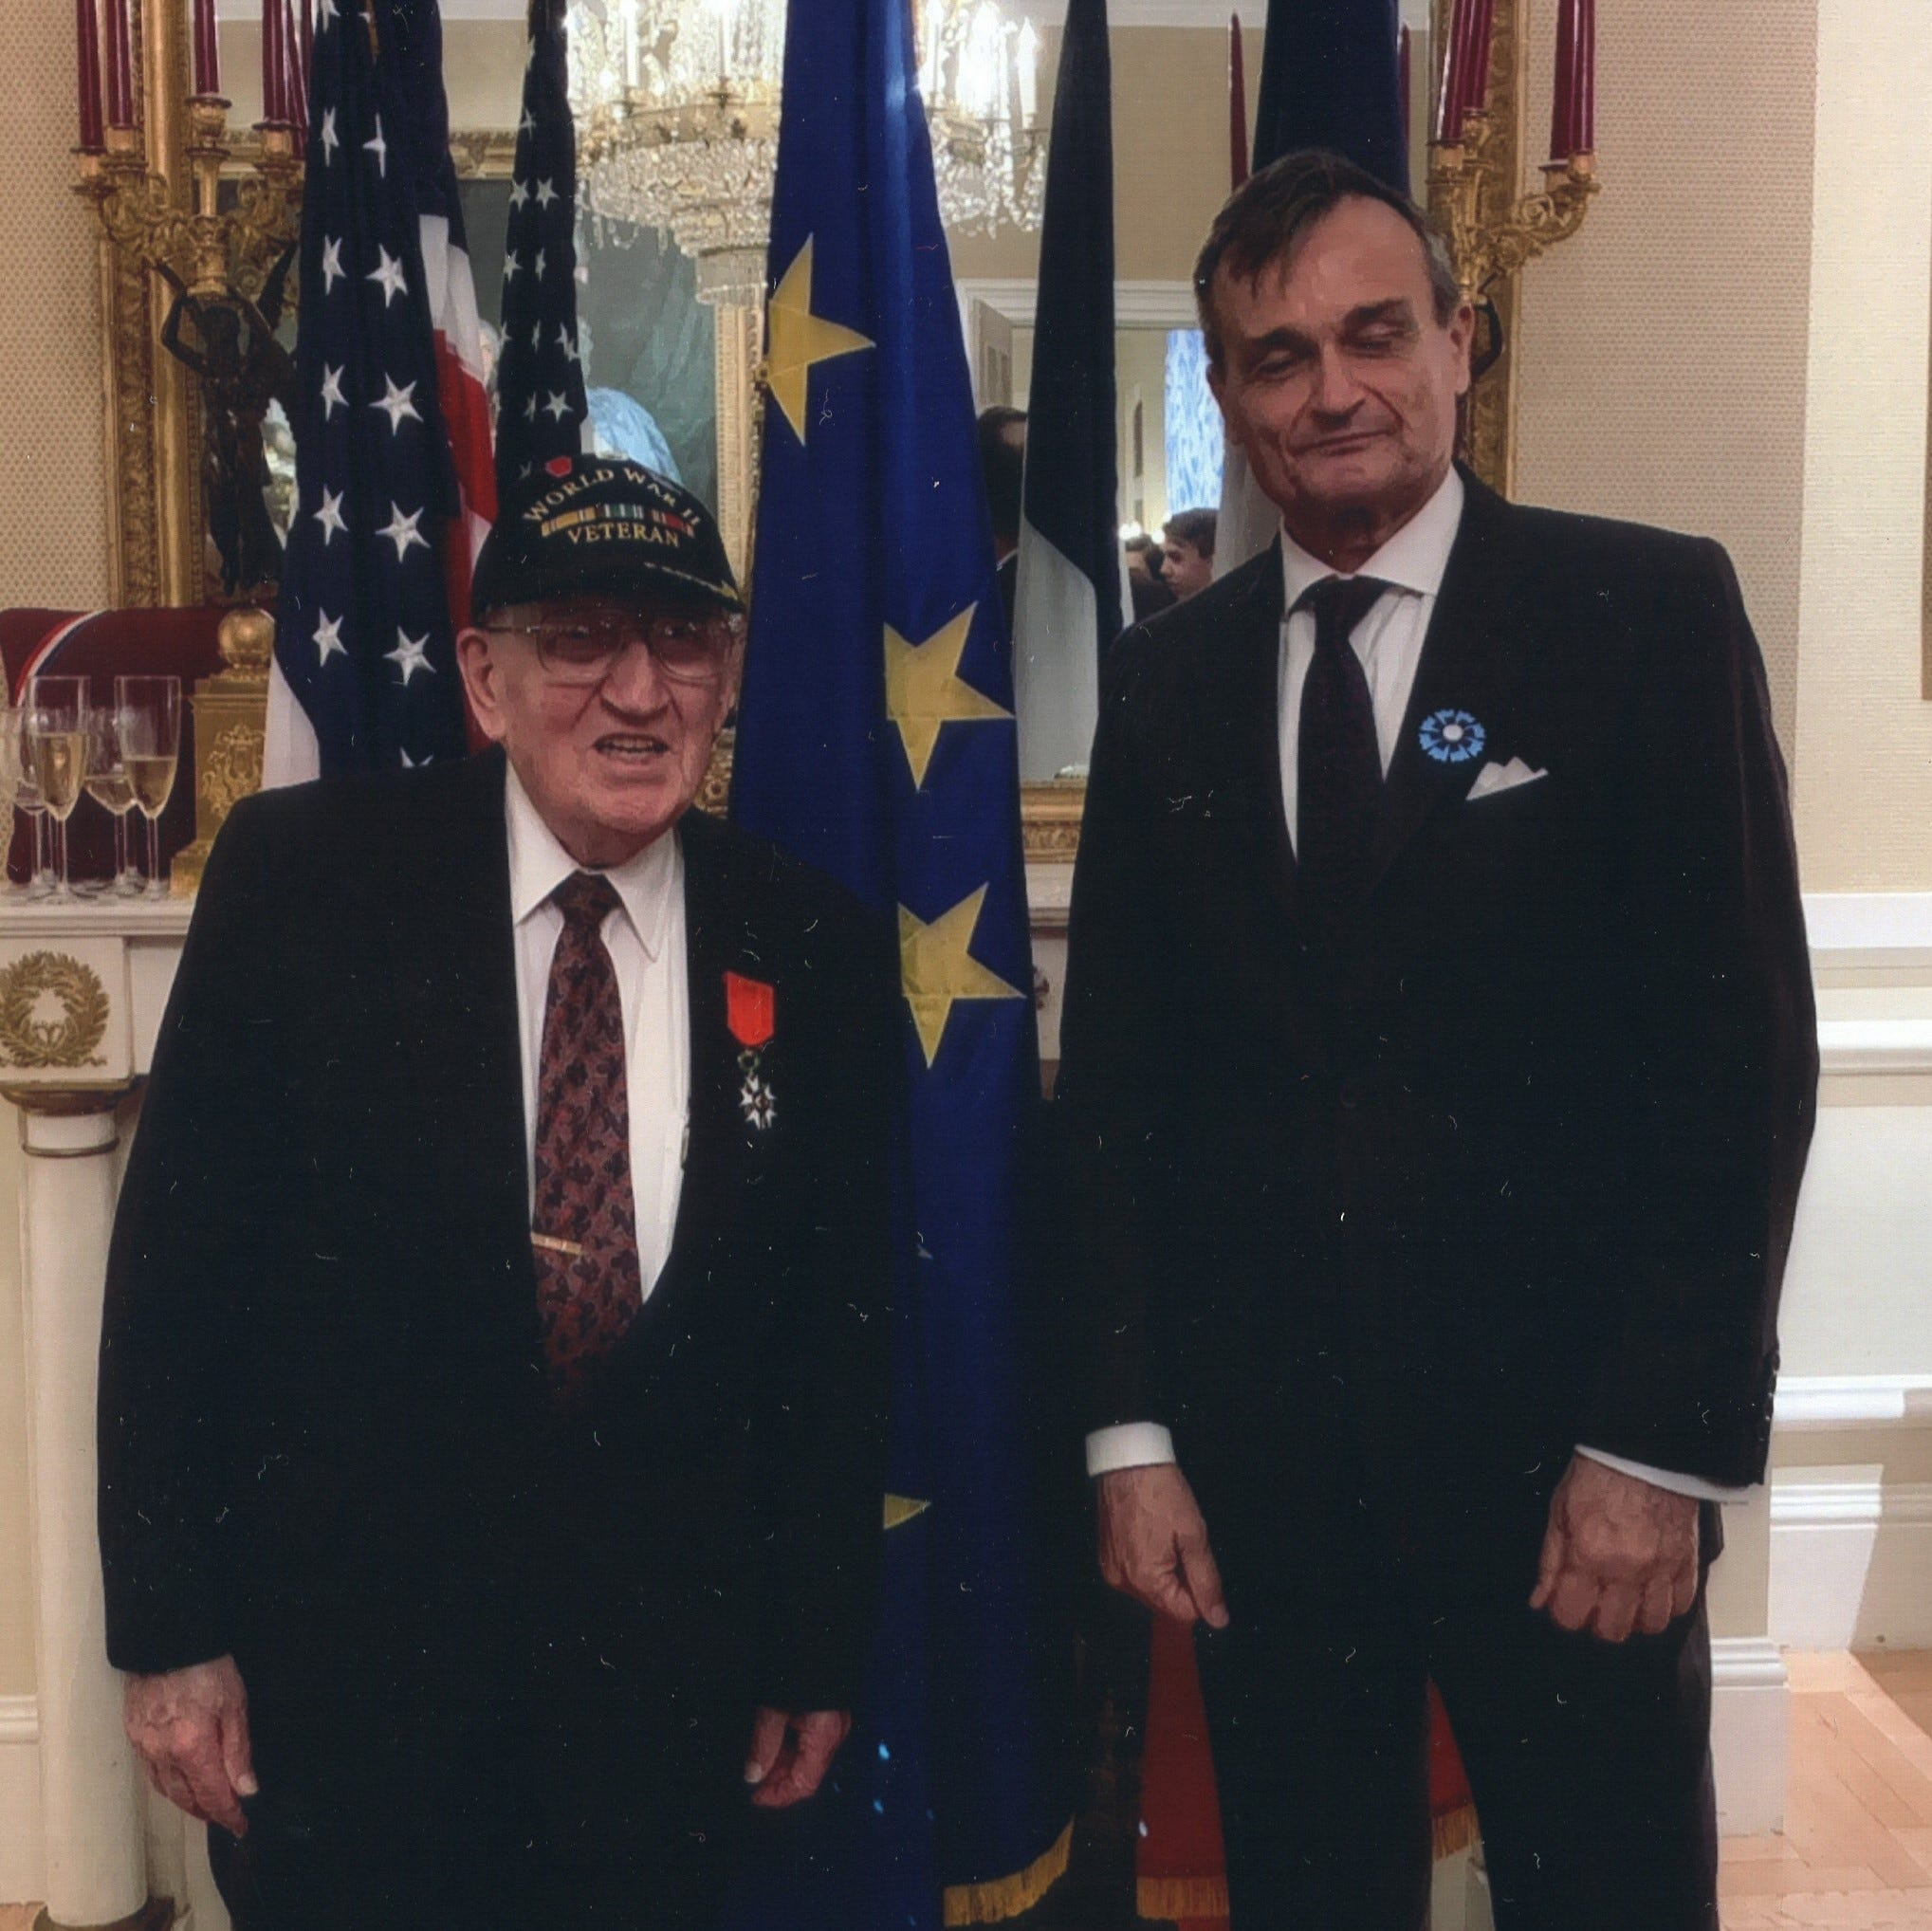 France gives Chambersburg WWII veteran its highest honor